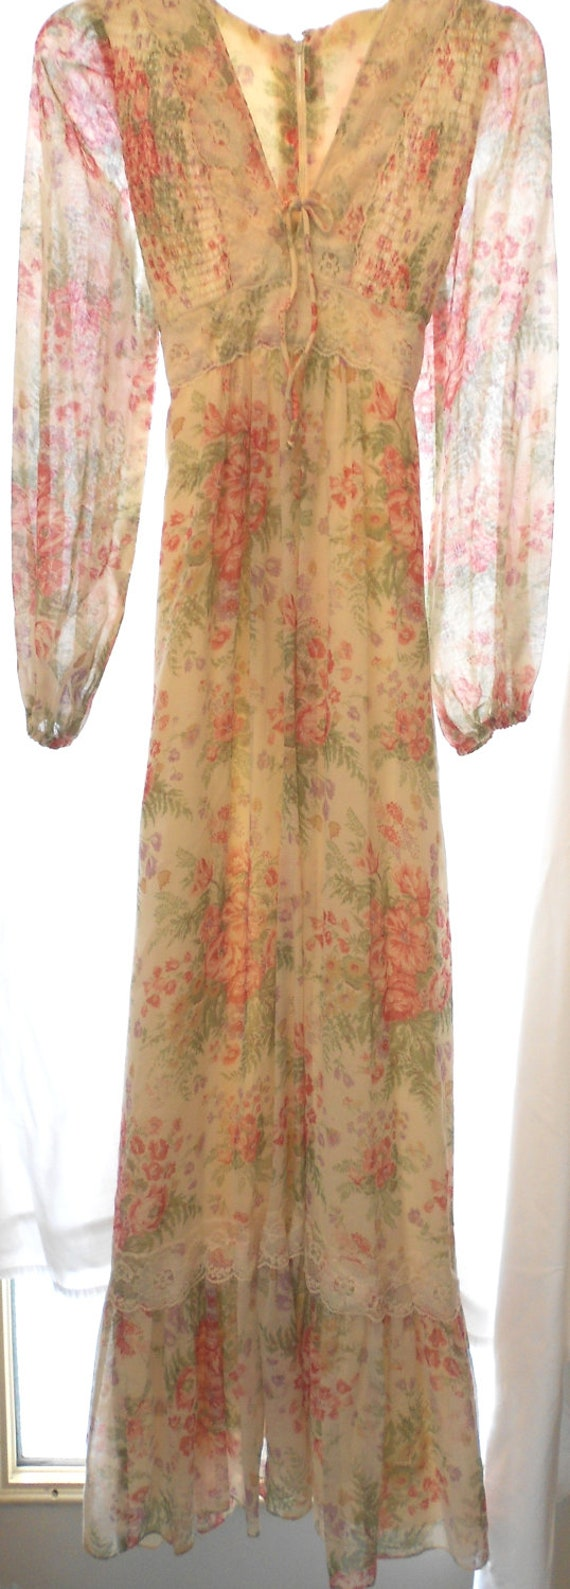 1970's Long Floral Prairie Dress Size Small